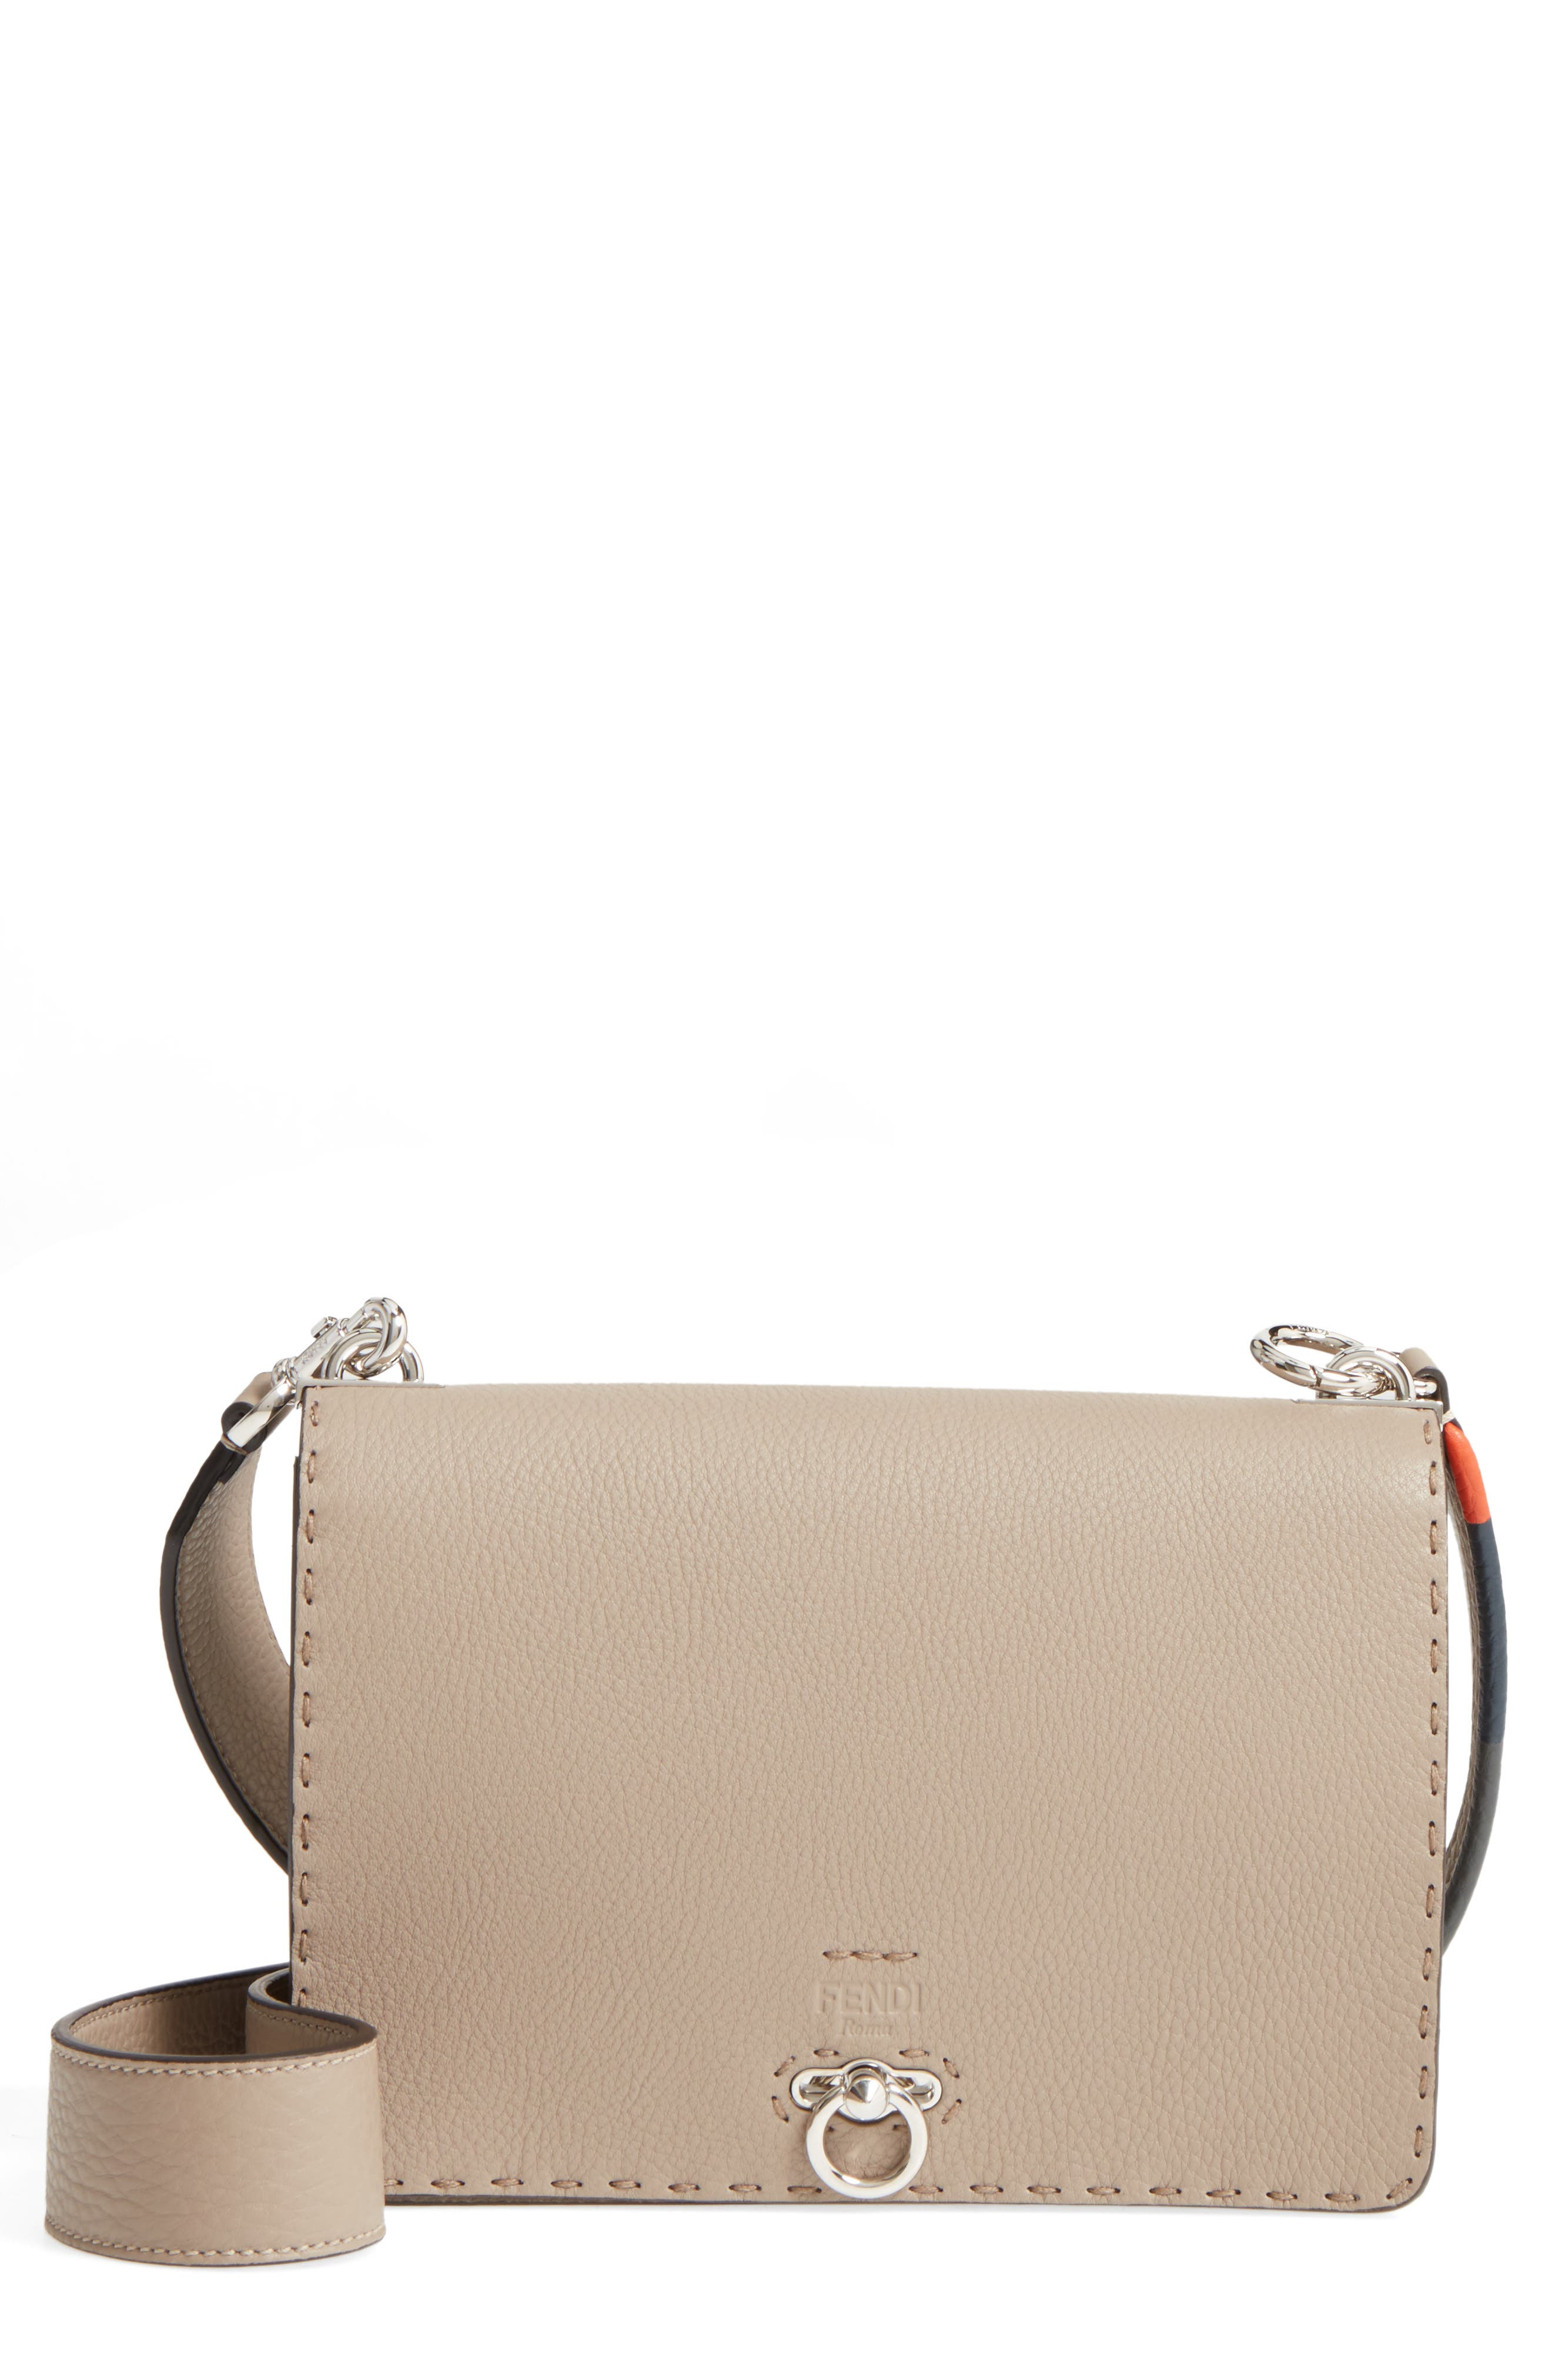 Pebbled Leather Messenger Bag,                             Main thumbnail 1, color,                             Beige